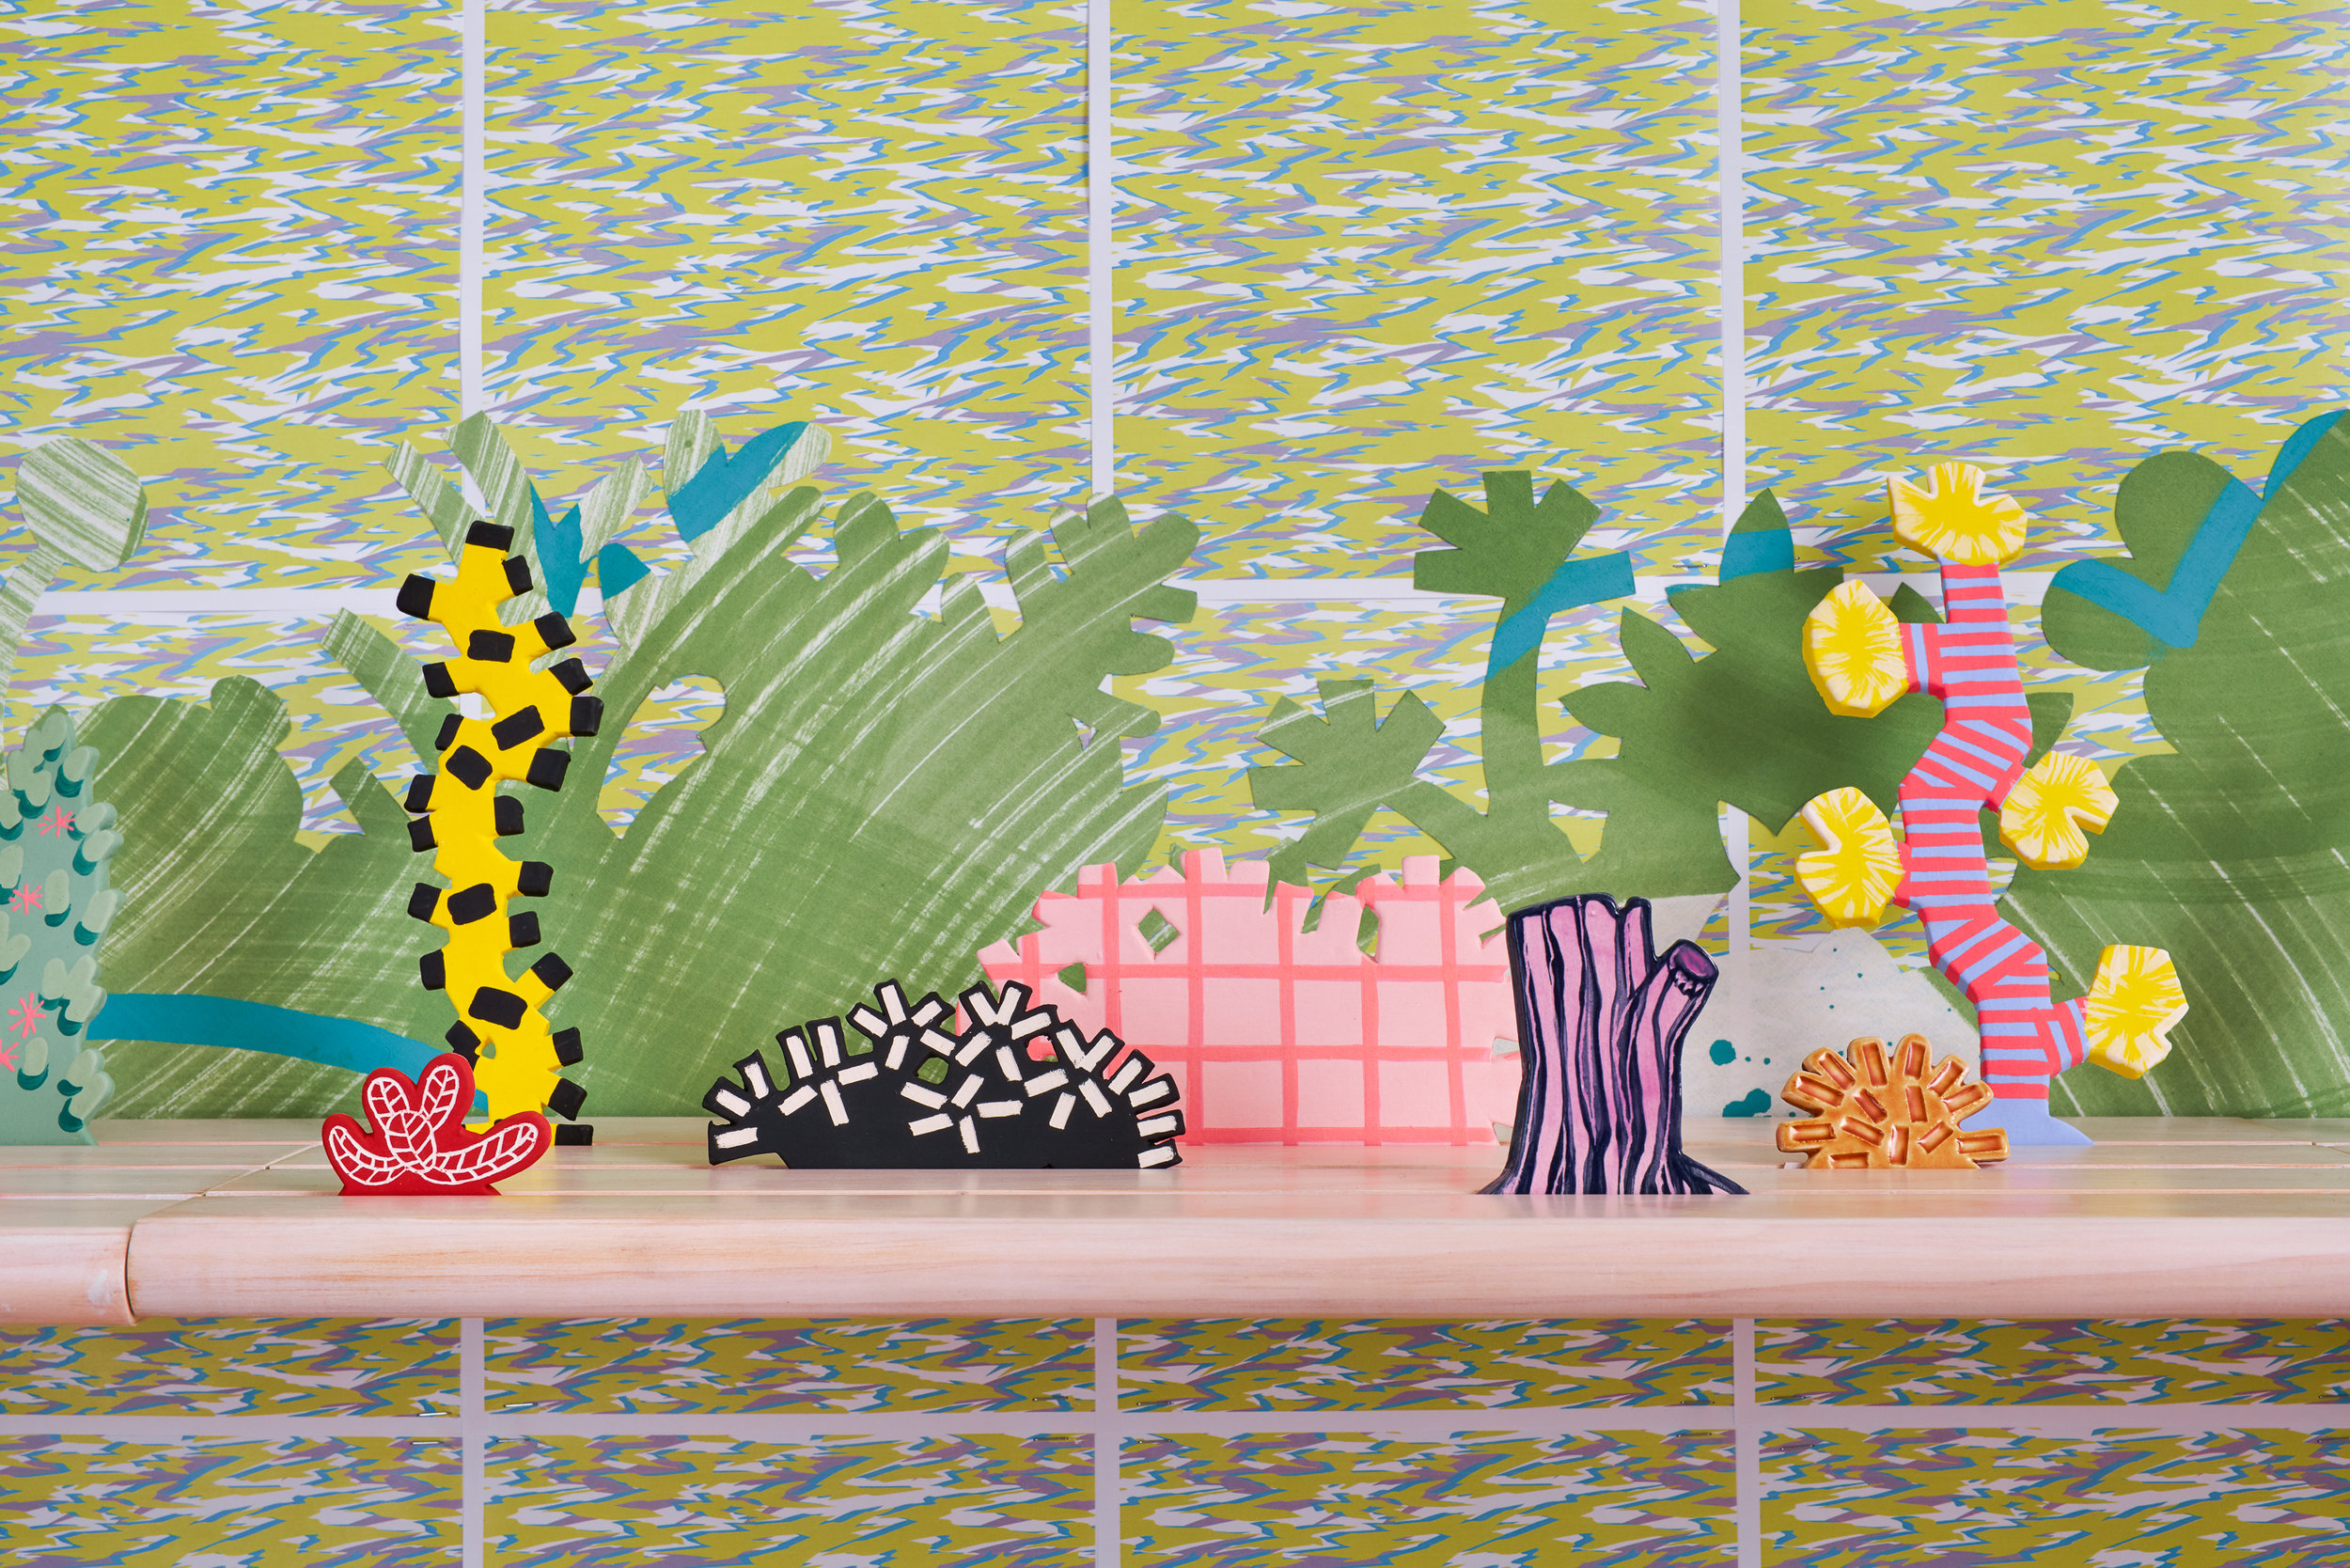 Horizon Allsorts  , 2018 (detail) Six floating wood shelves, painted muslin, ceramic, underglaze and glaze; 12ft x 1ft x 9inches  Installation includes wall paper by Devon Tsuno